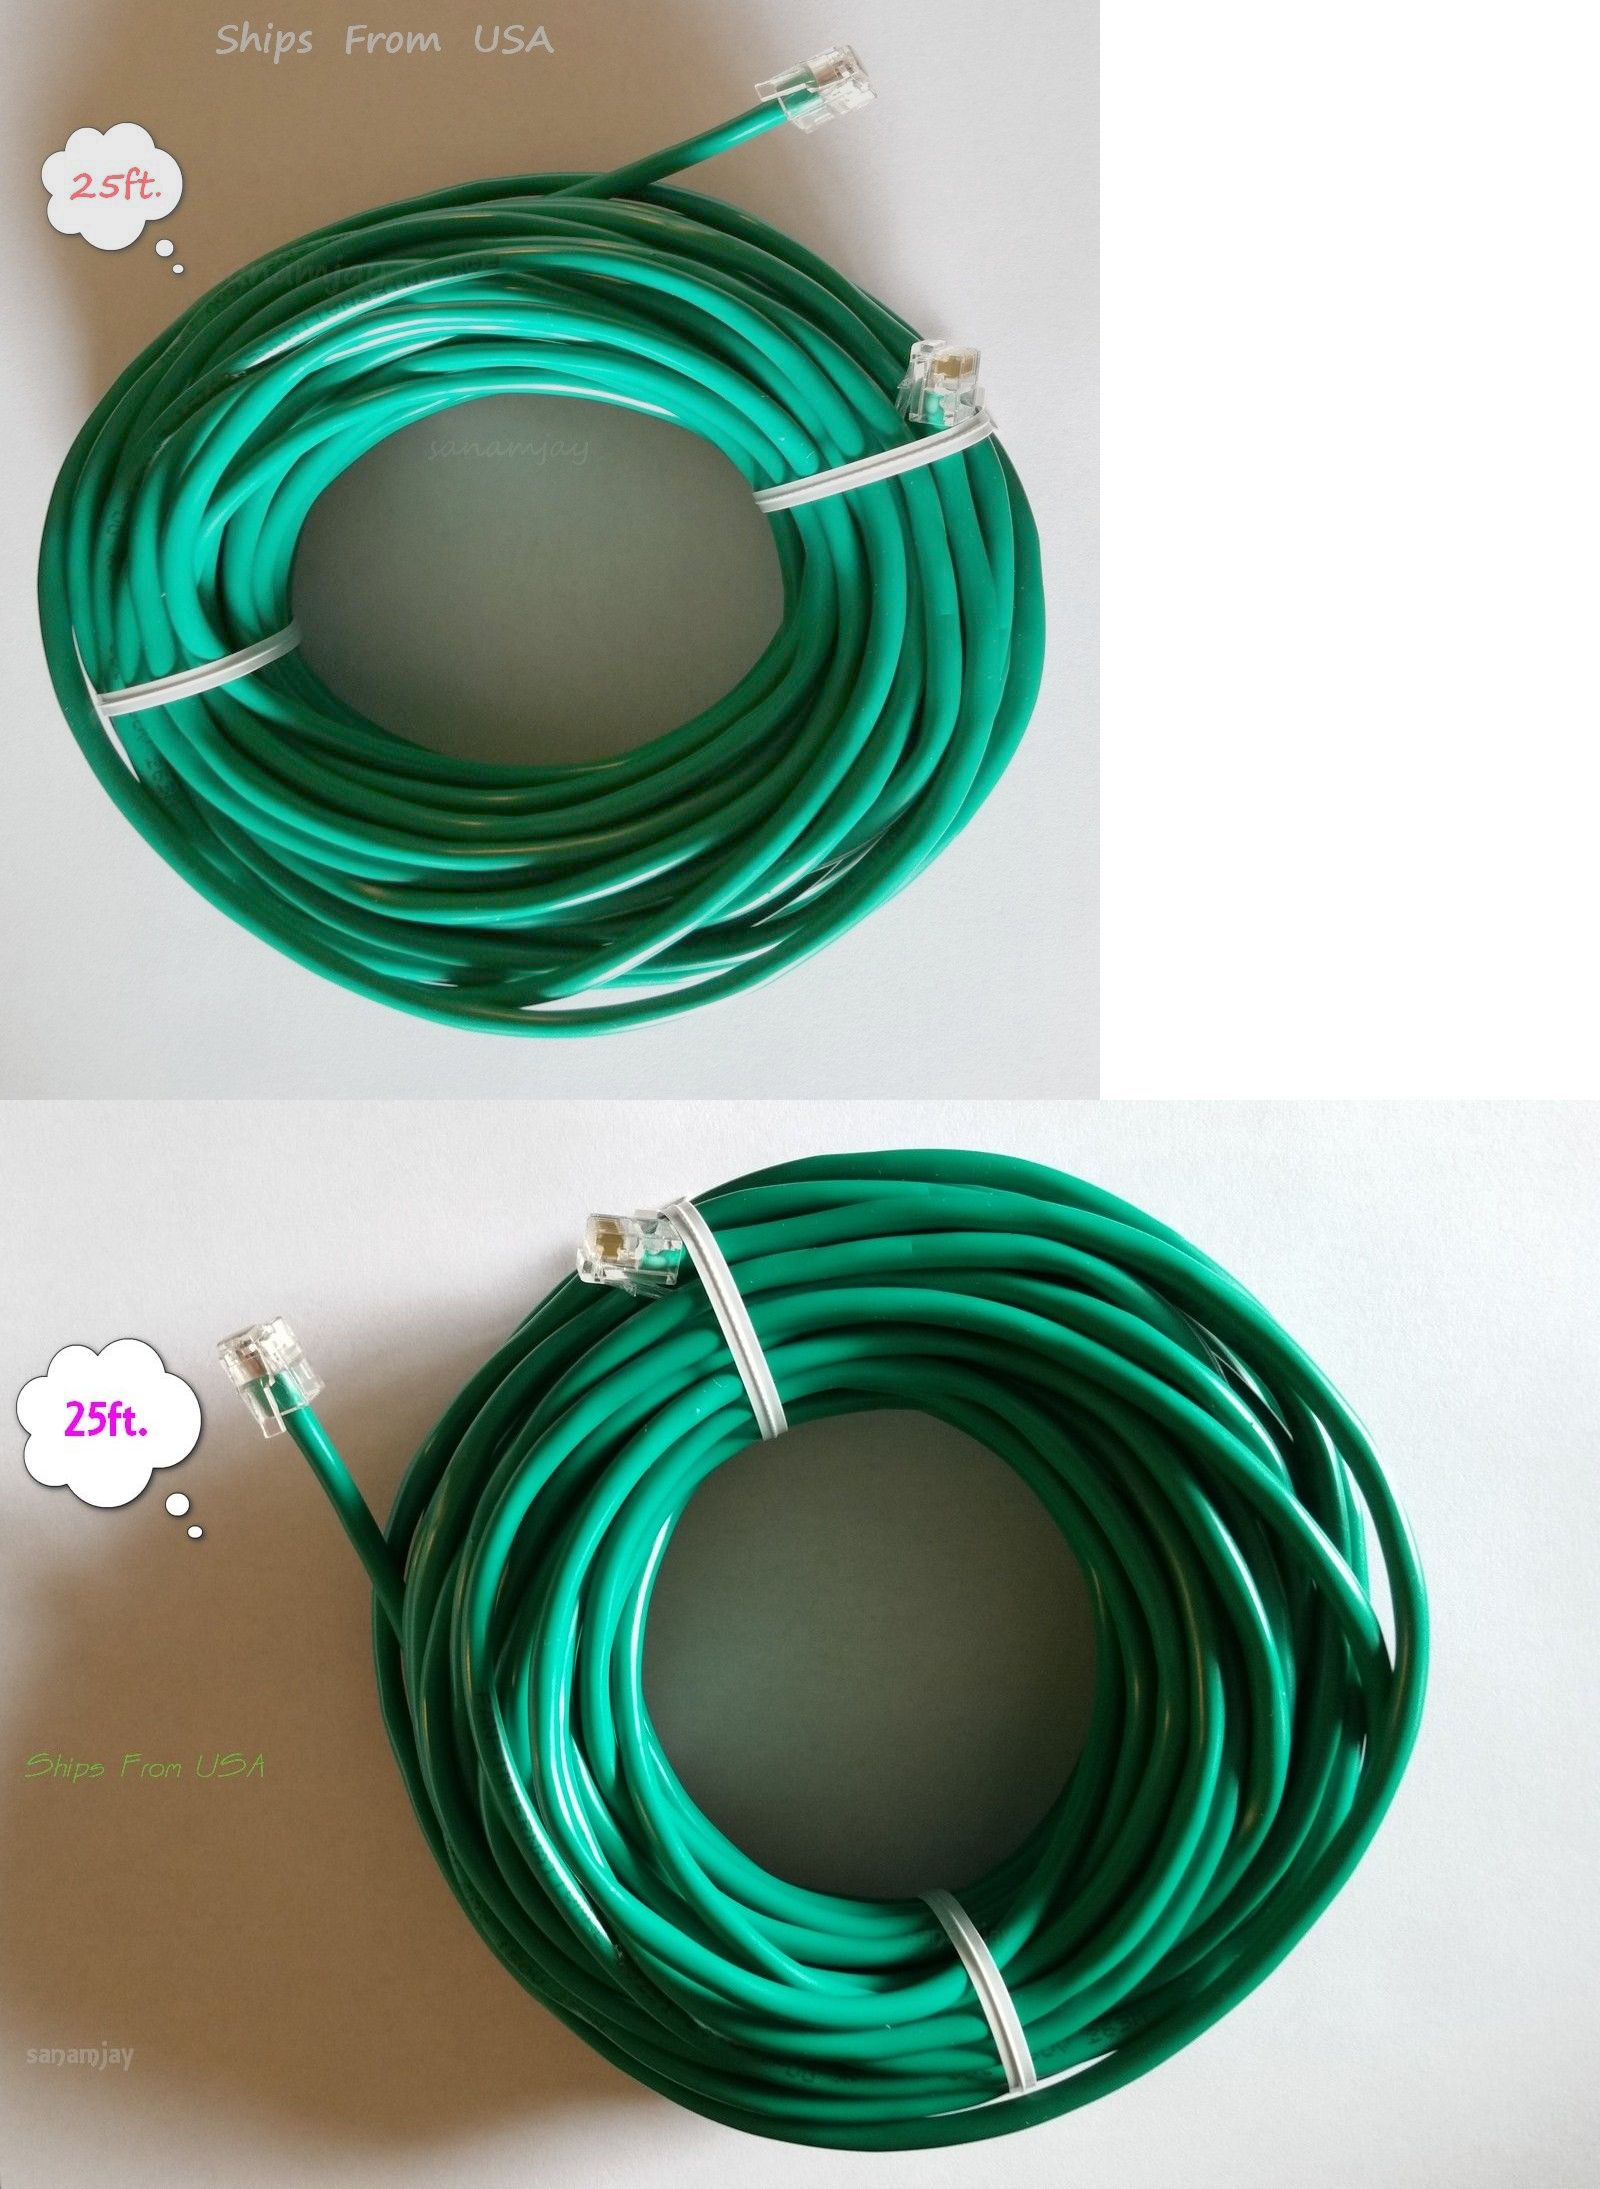 small resolution of dsl phone cables rj 11 67857 25ft rj11 rj12 cat5e green dsl telephone data cable for centurylink atandt etc buy it now only 11 99 on ebay phone